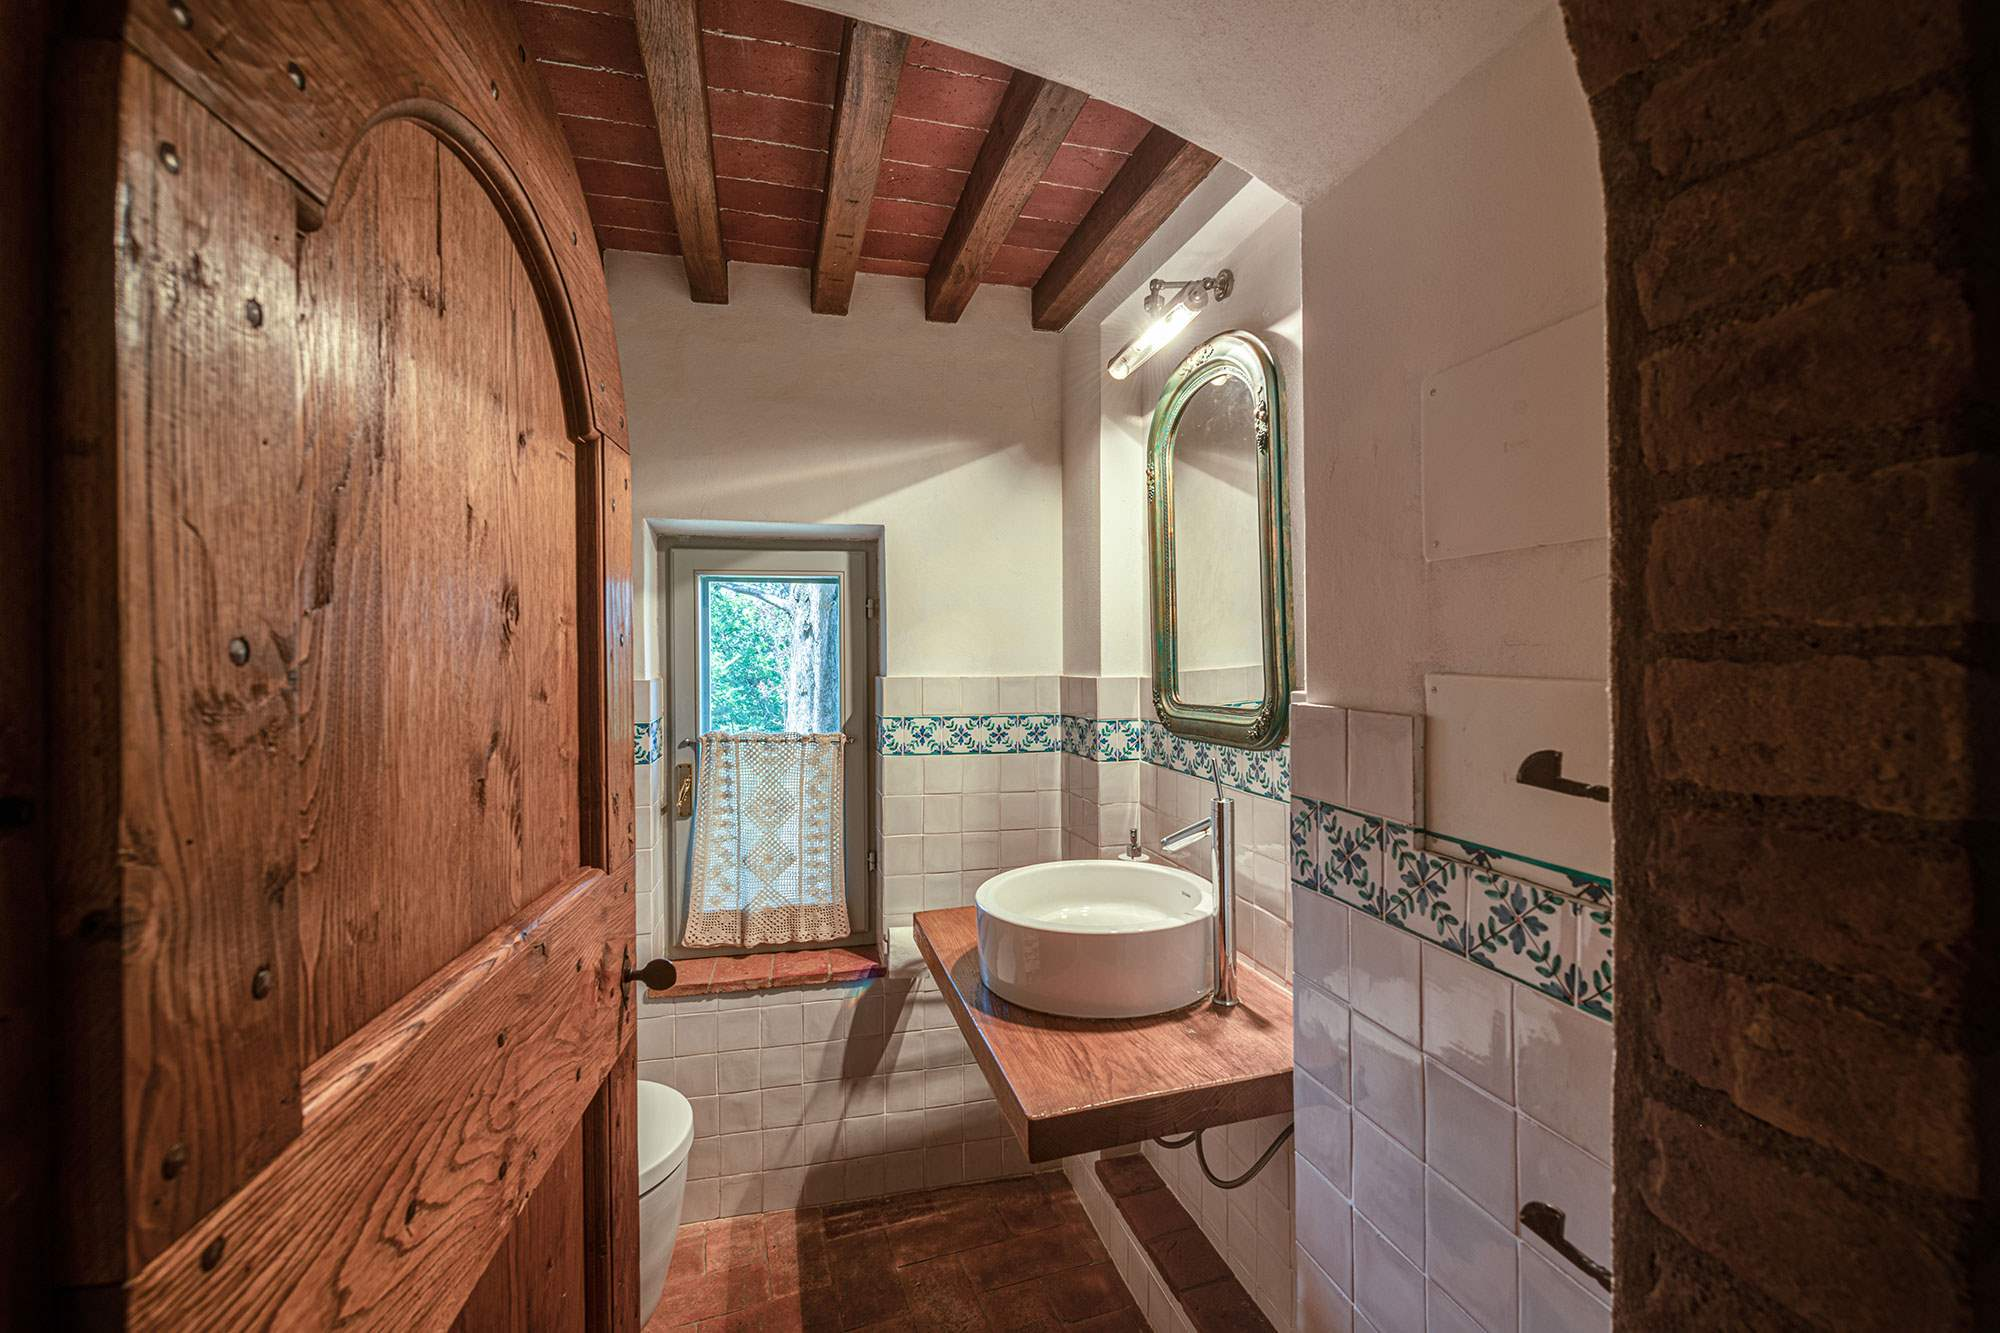 Villa Claudia, 6 Bedroom rate, 6 bedroom villa in Chianti & Countryside, Tuscany Photo #27